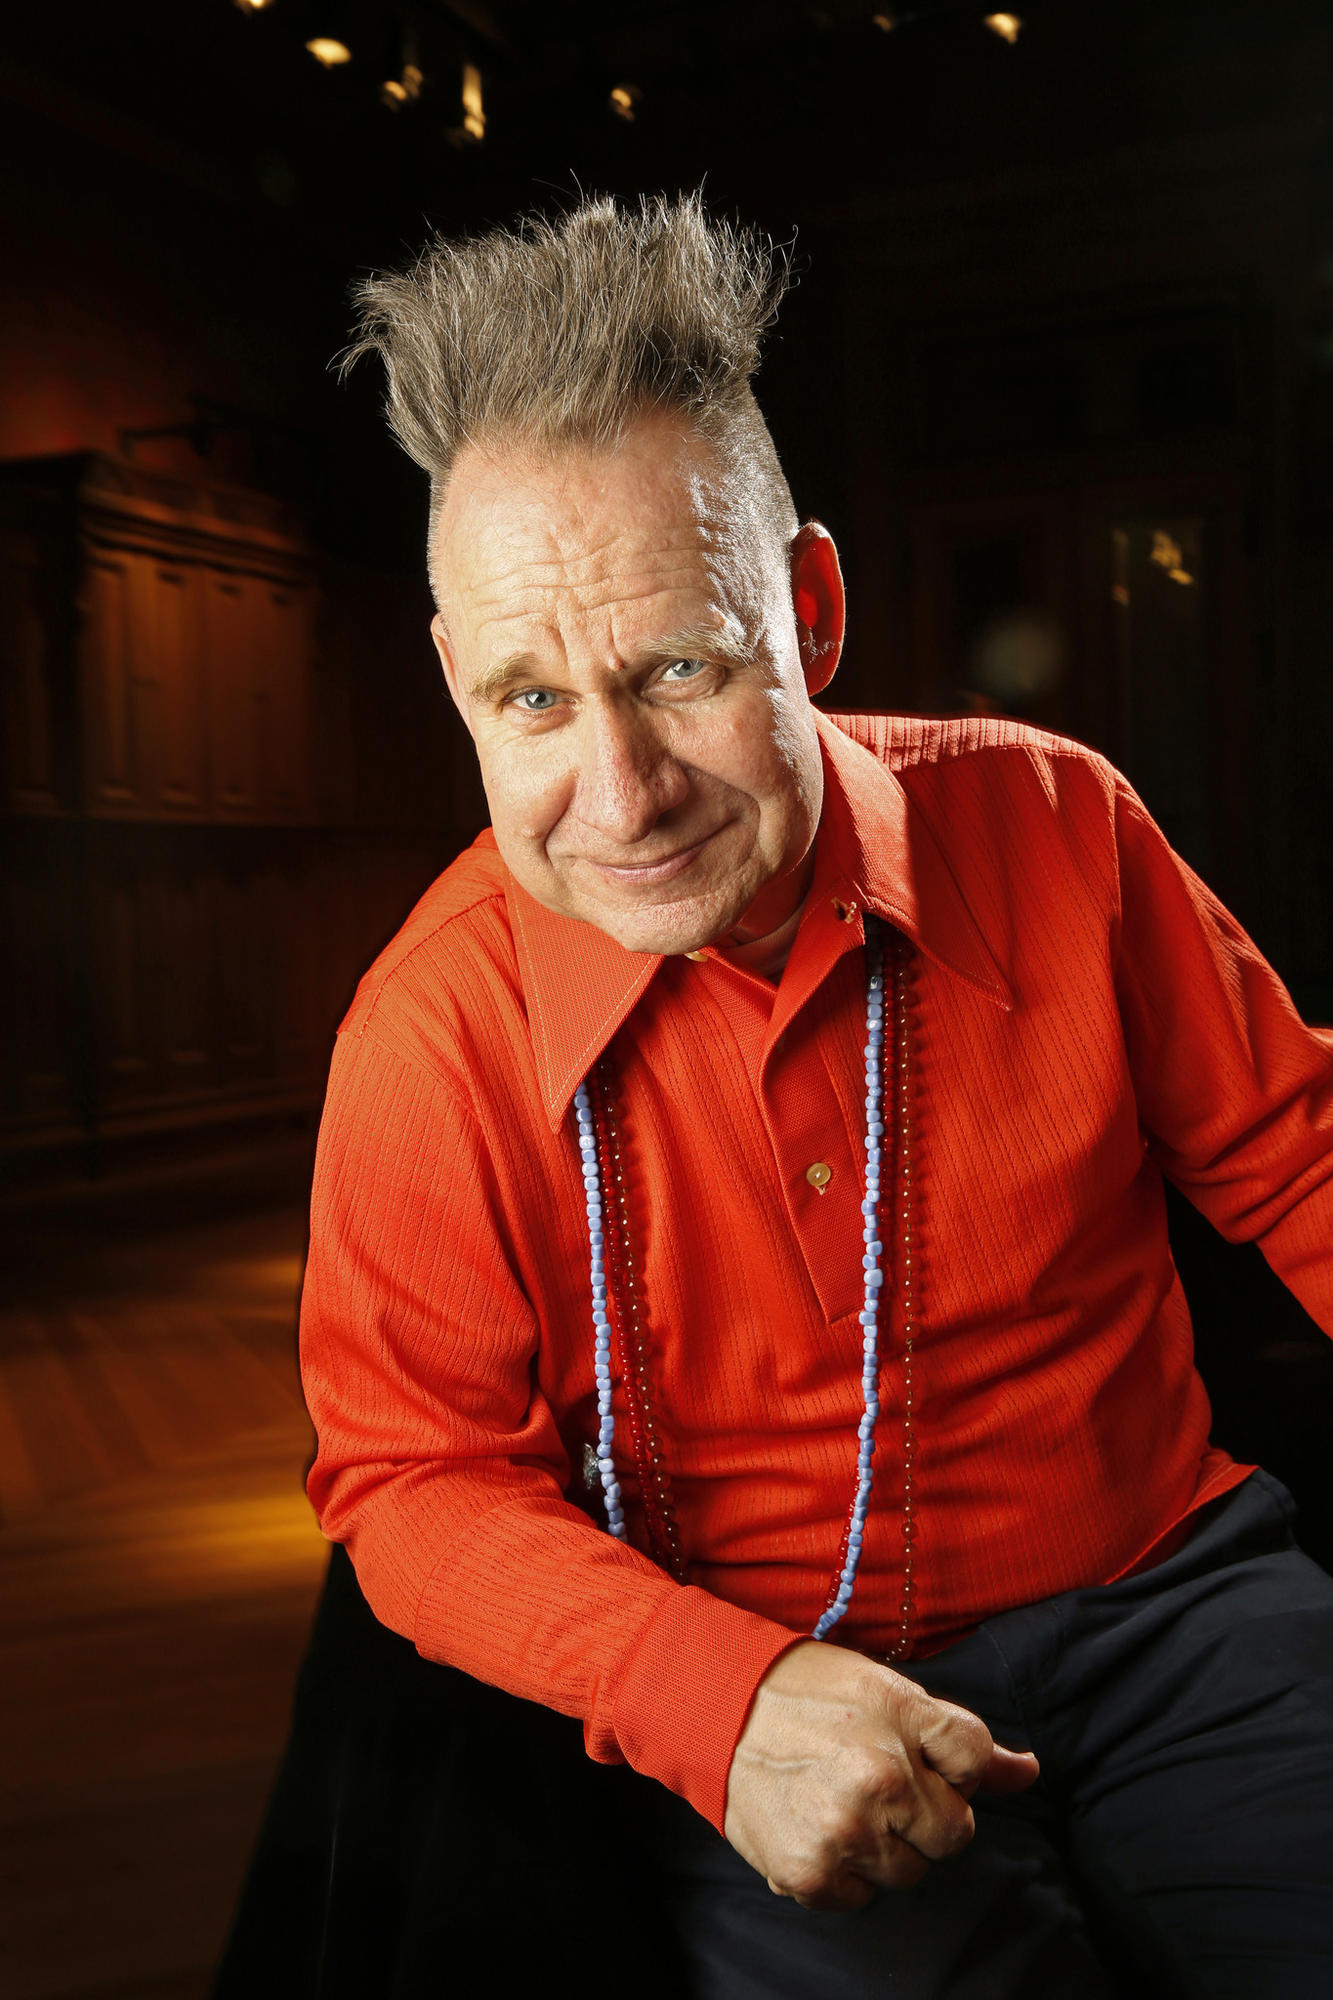 Beyond the Ojai festival, Peter Sellars is also serving as artist in residence for the Berlin Philharmonic and developing a new opera with John Adams about the California Gold Rush.